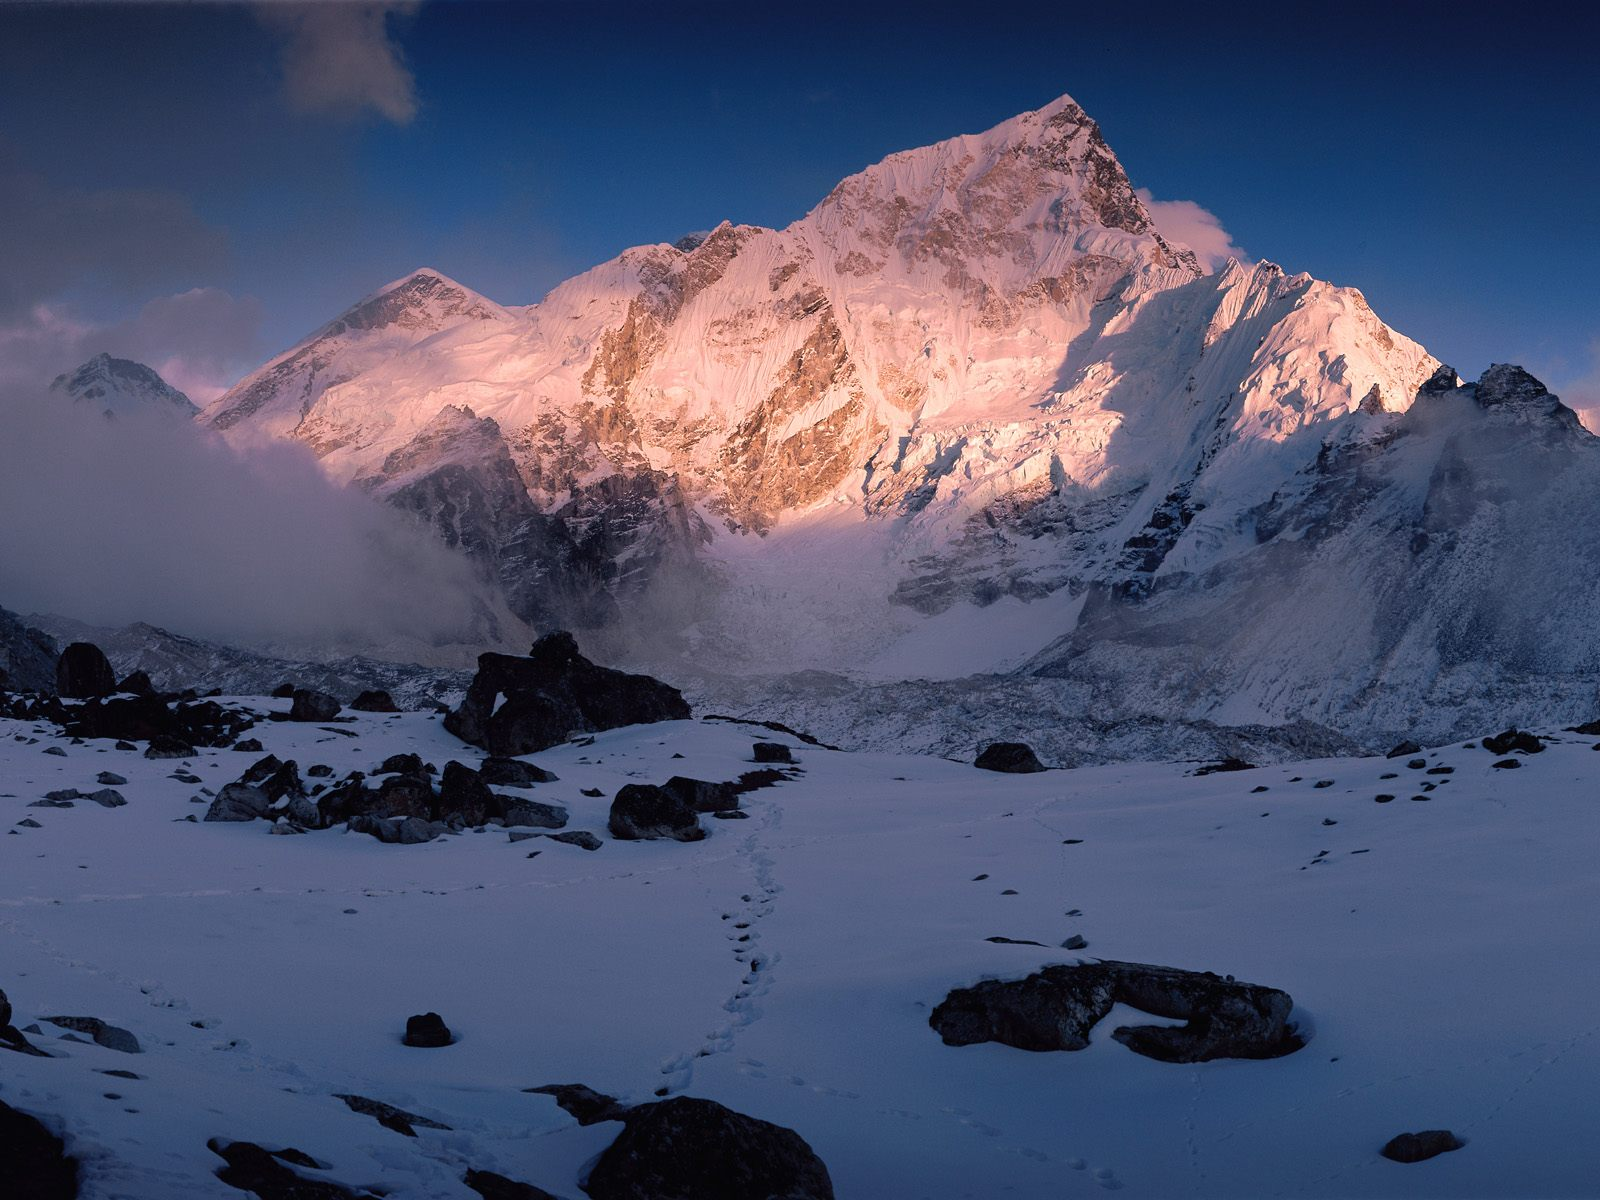 himalaya mountains hd wallpaper - photo #6